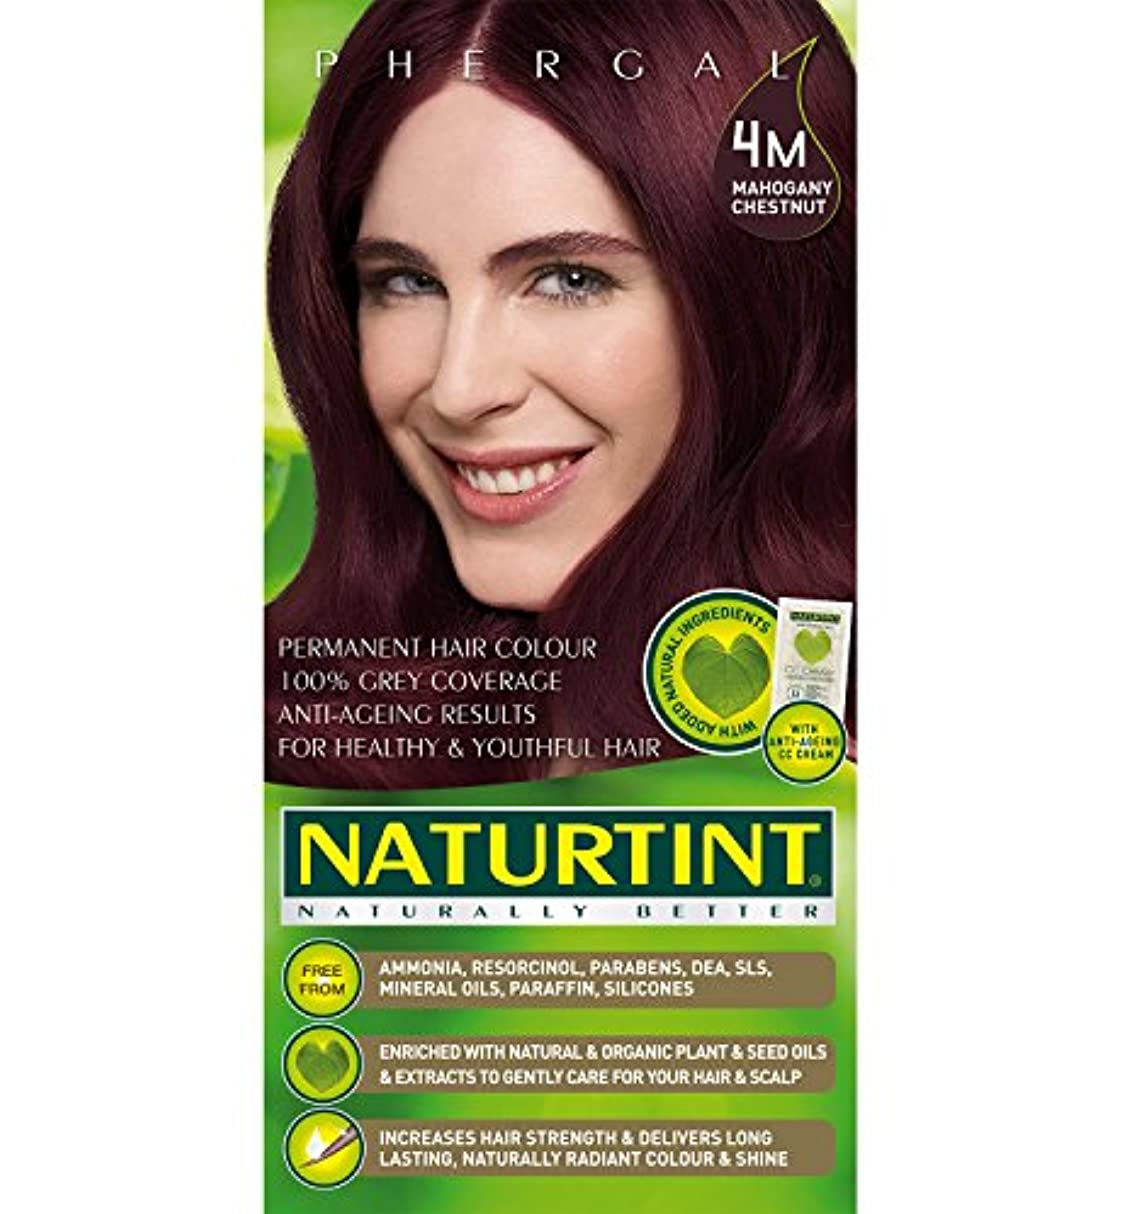 ホース木材ホイストNaturtint Hair Color 4M Mahogany Chestnut Count (並行輸入品)